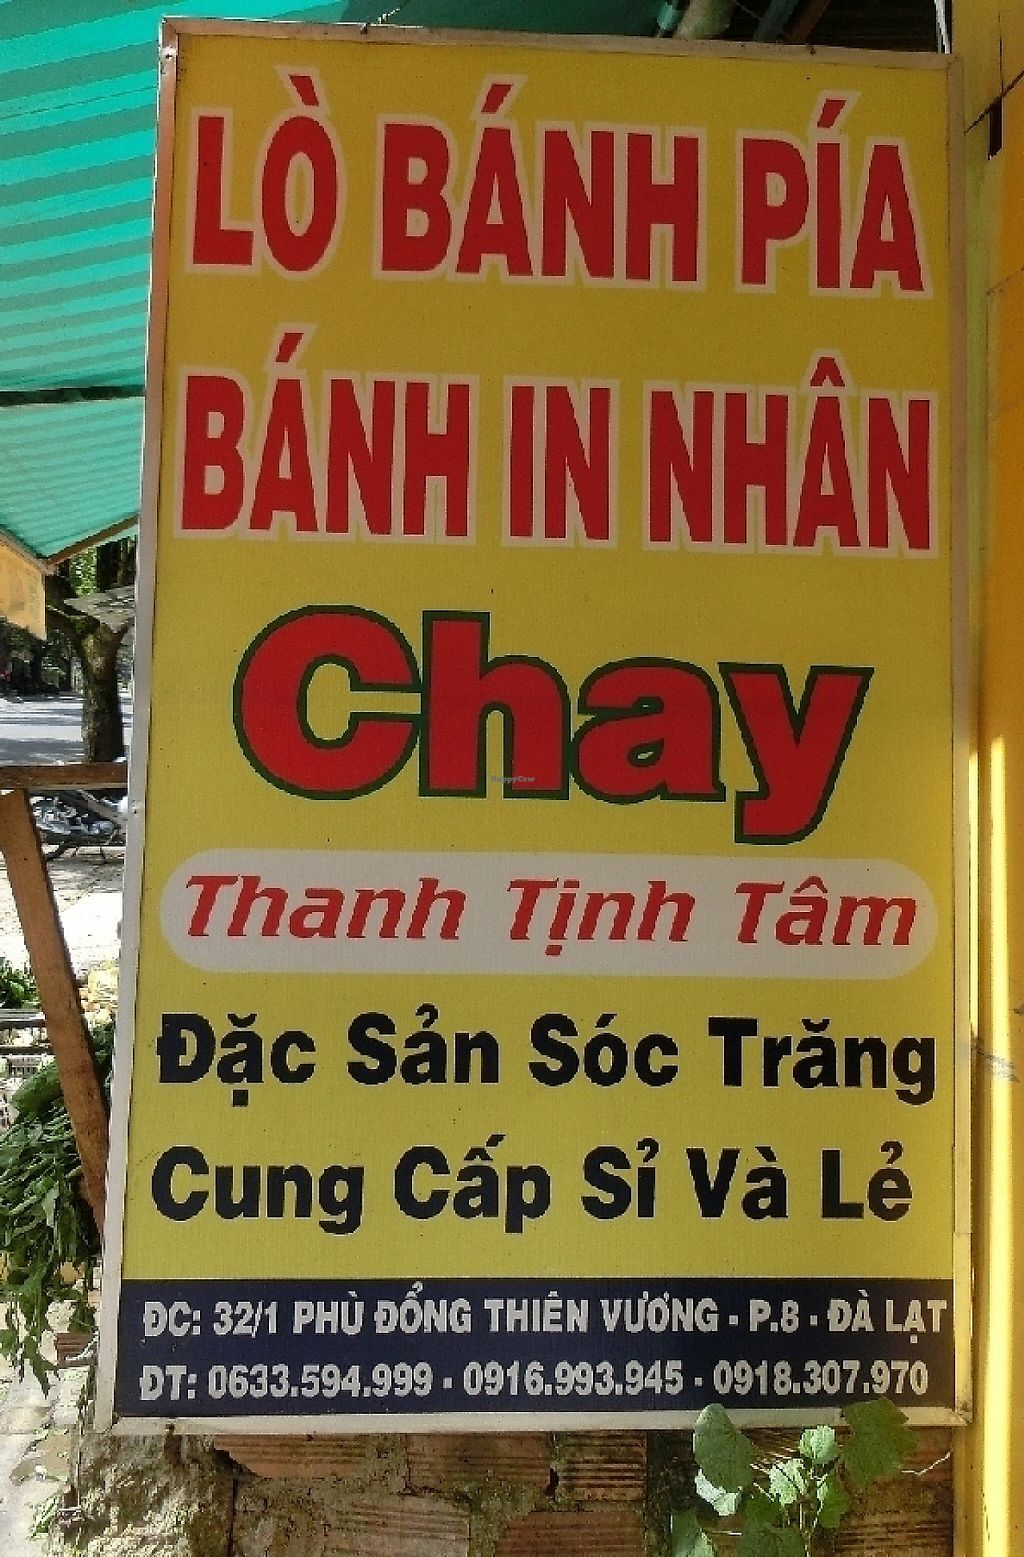 """Photo of Tranquil Thanh Tinh Vegetarian  by <a href=""""/members/profile/Canamon"""">Canamon</a> <br/>outdoor sign <br/> May 10, 2017  - <a href='/contact/abuse/image/21549/257613'>Report</a>"""